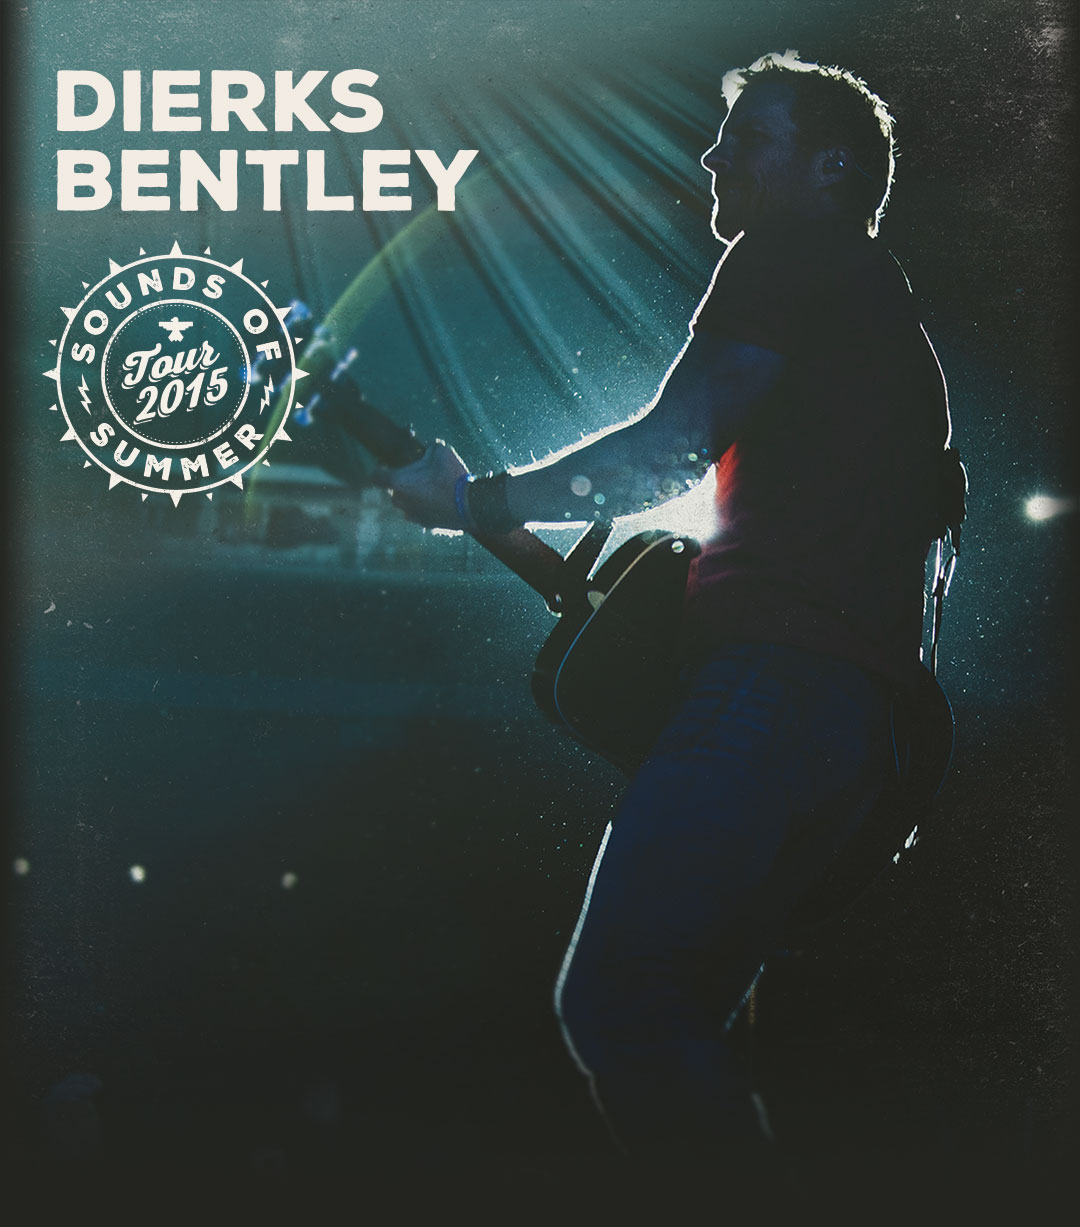 Dierks Bentley Concert Tickets: Dierks Bentley Sounds Of Summer Tour 2015